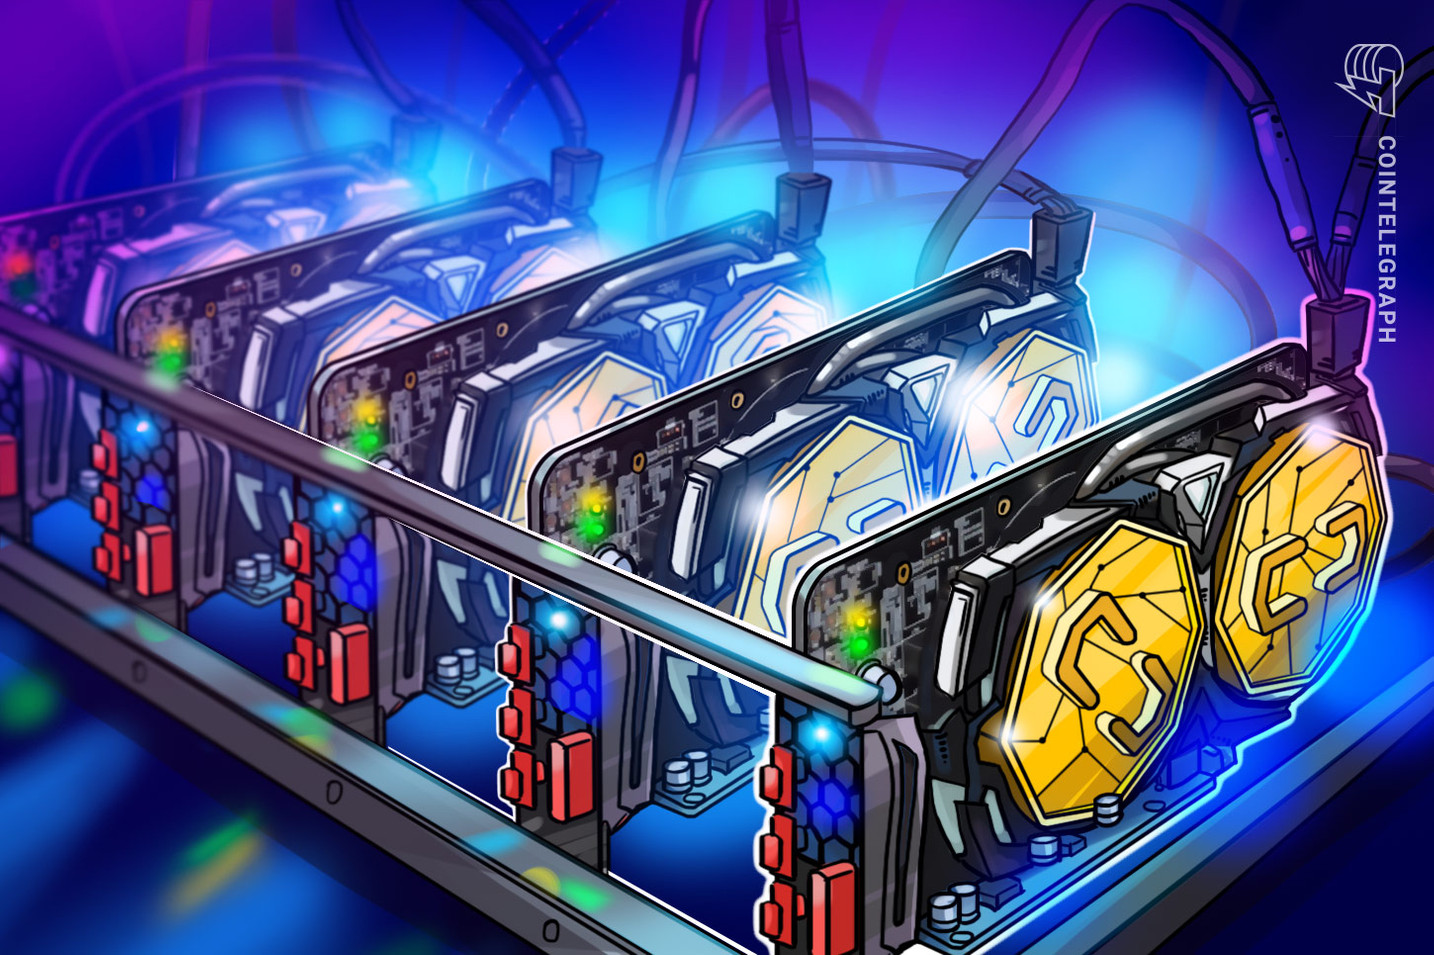 Mining Giant Bitmain Hurries to Deploy 90,000 S9 Antminers Ahead of Bitcoin Cash Hard Fork